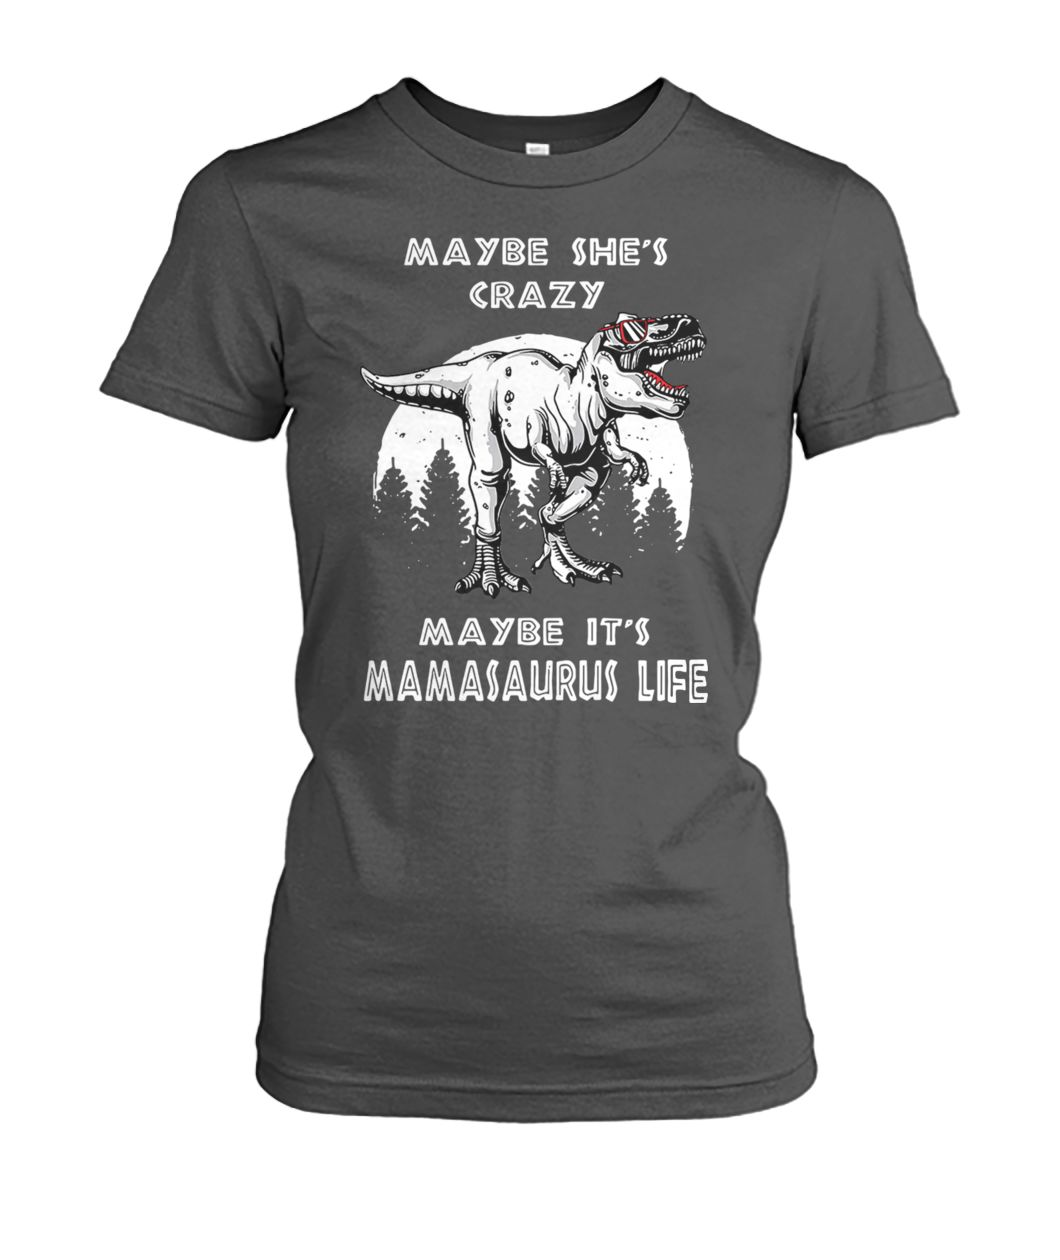 [Hot version] Maybe she's crazy maybe it's mamasaurus life shirt